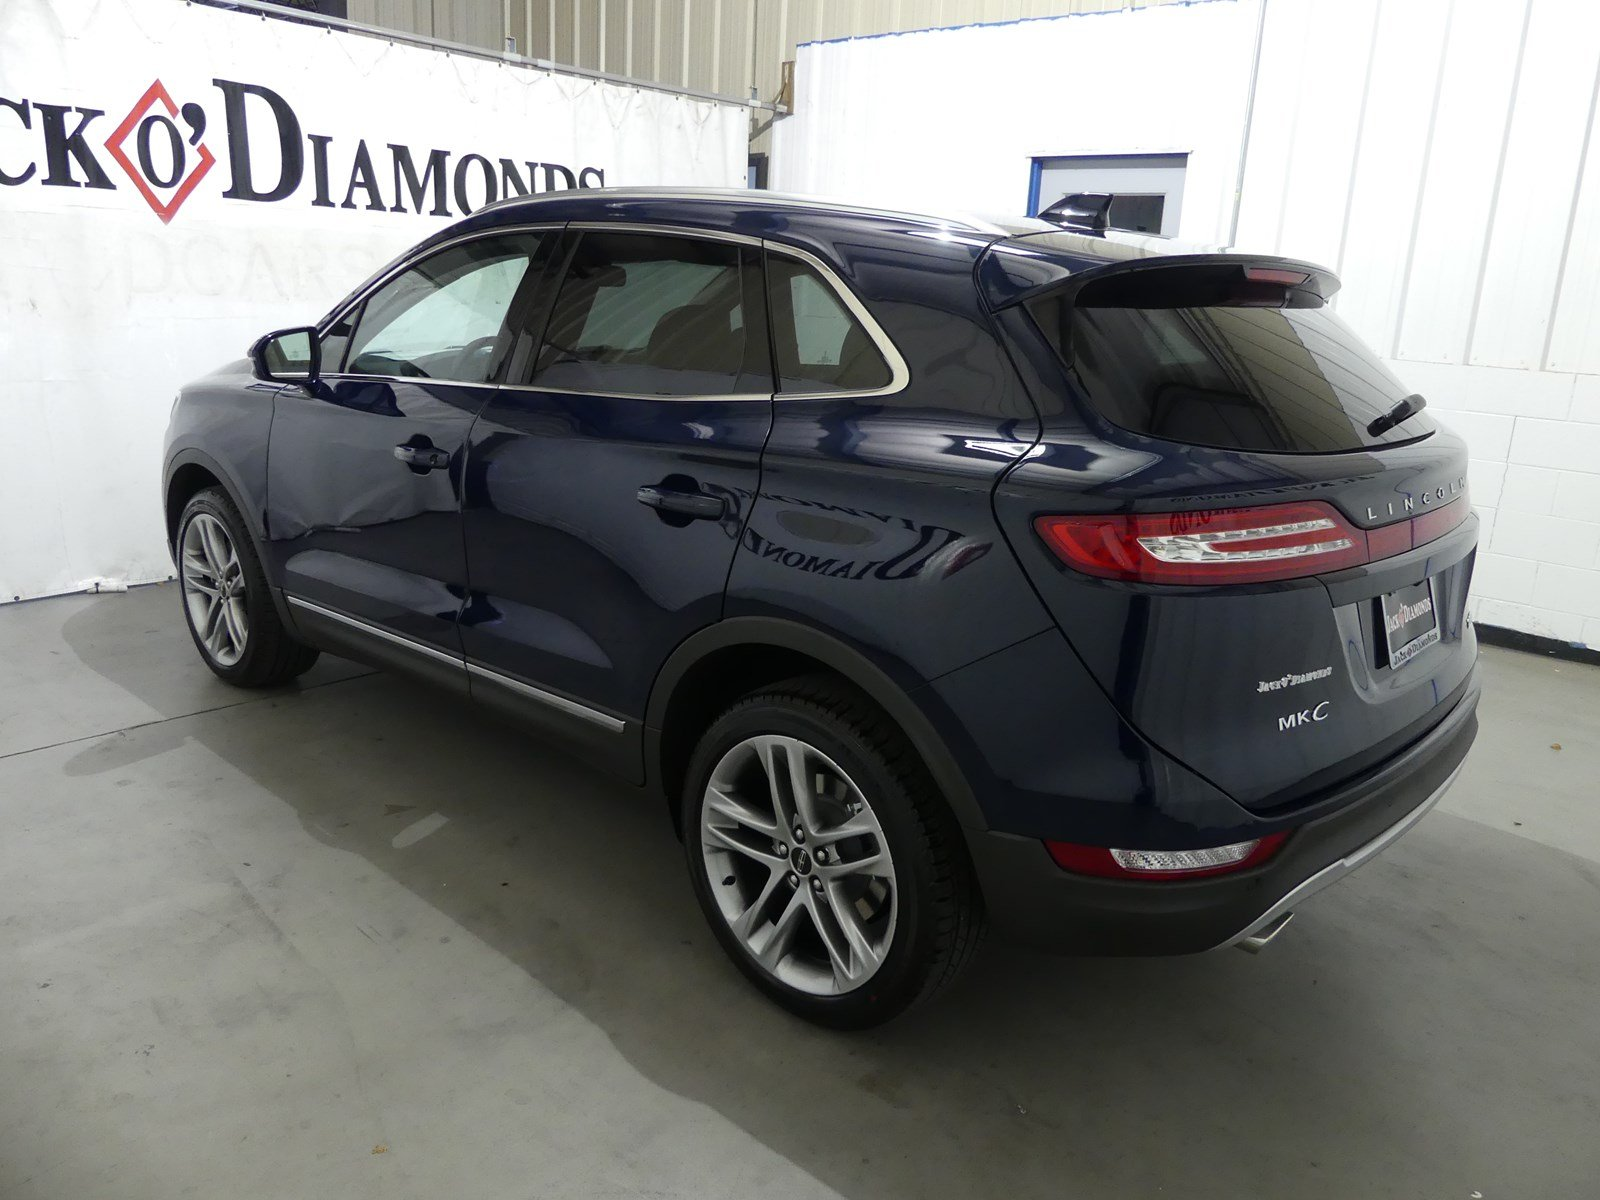 new 2018 lincoln mkc reserve sport utility near athens 18mc1 jack o 39 diamonds lincoln. Black Bedroom Furniture Sets. Home Design Ideas